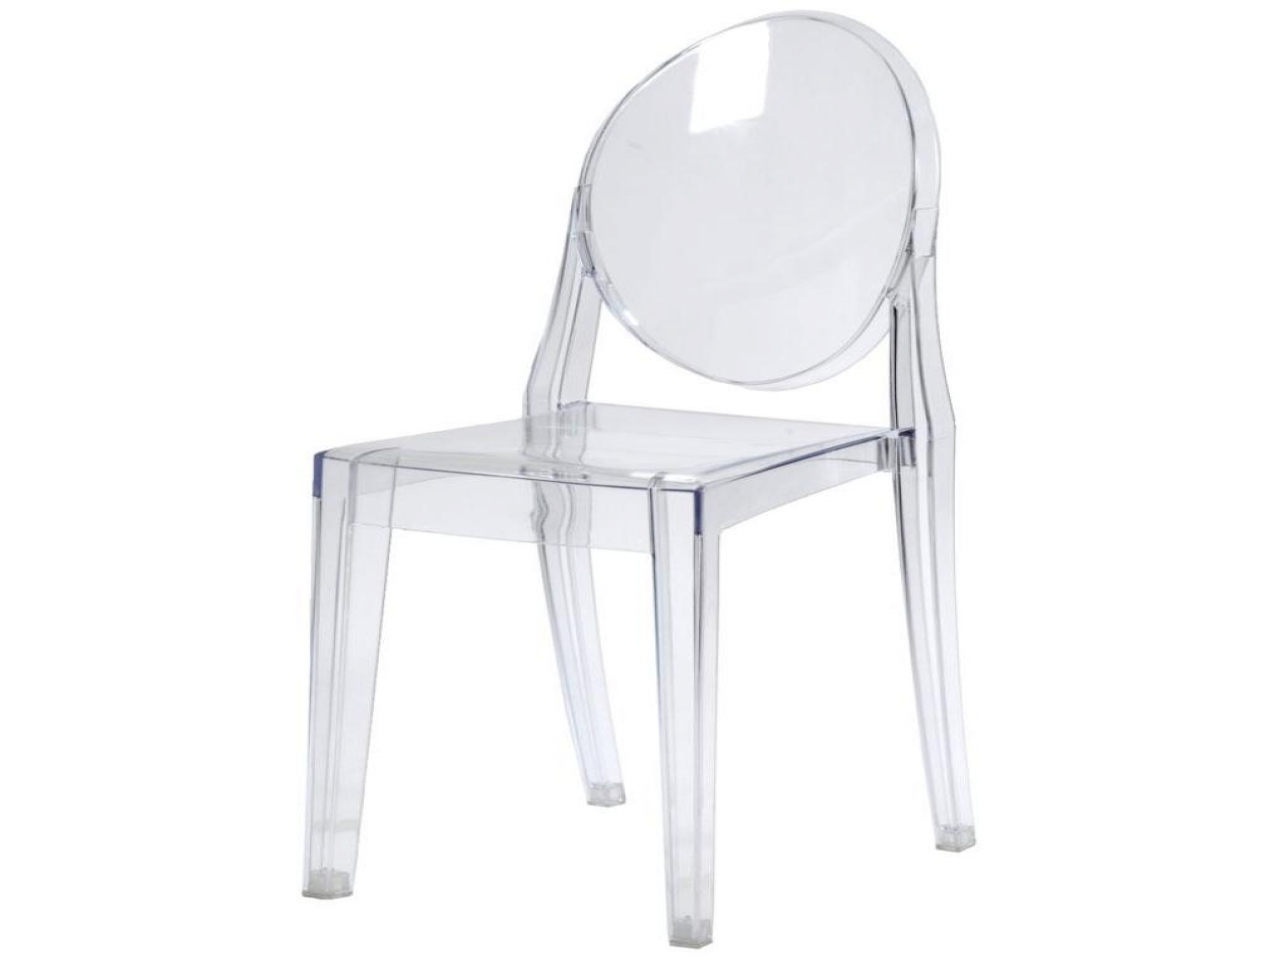 2017 Decoration Ghost Starck Chair Clear Plastic Dining Table And Chairs For Clear Plastic Dining Tables (View 19 of 25)